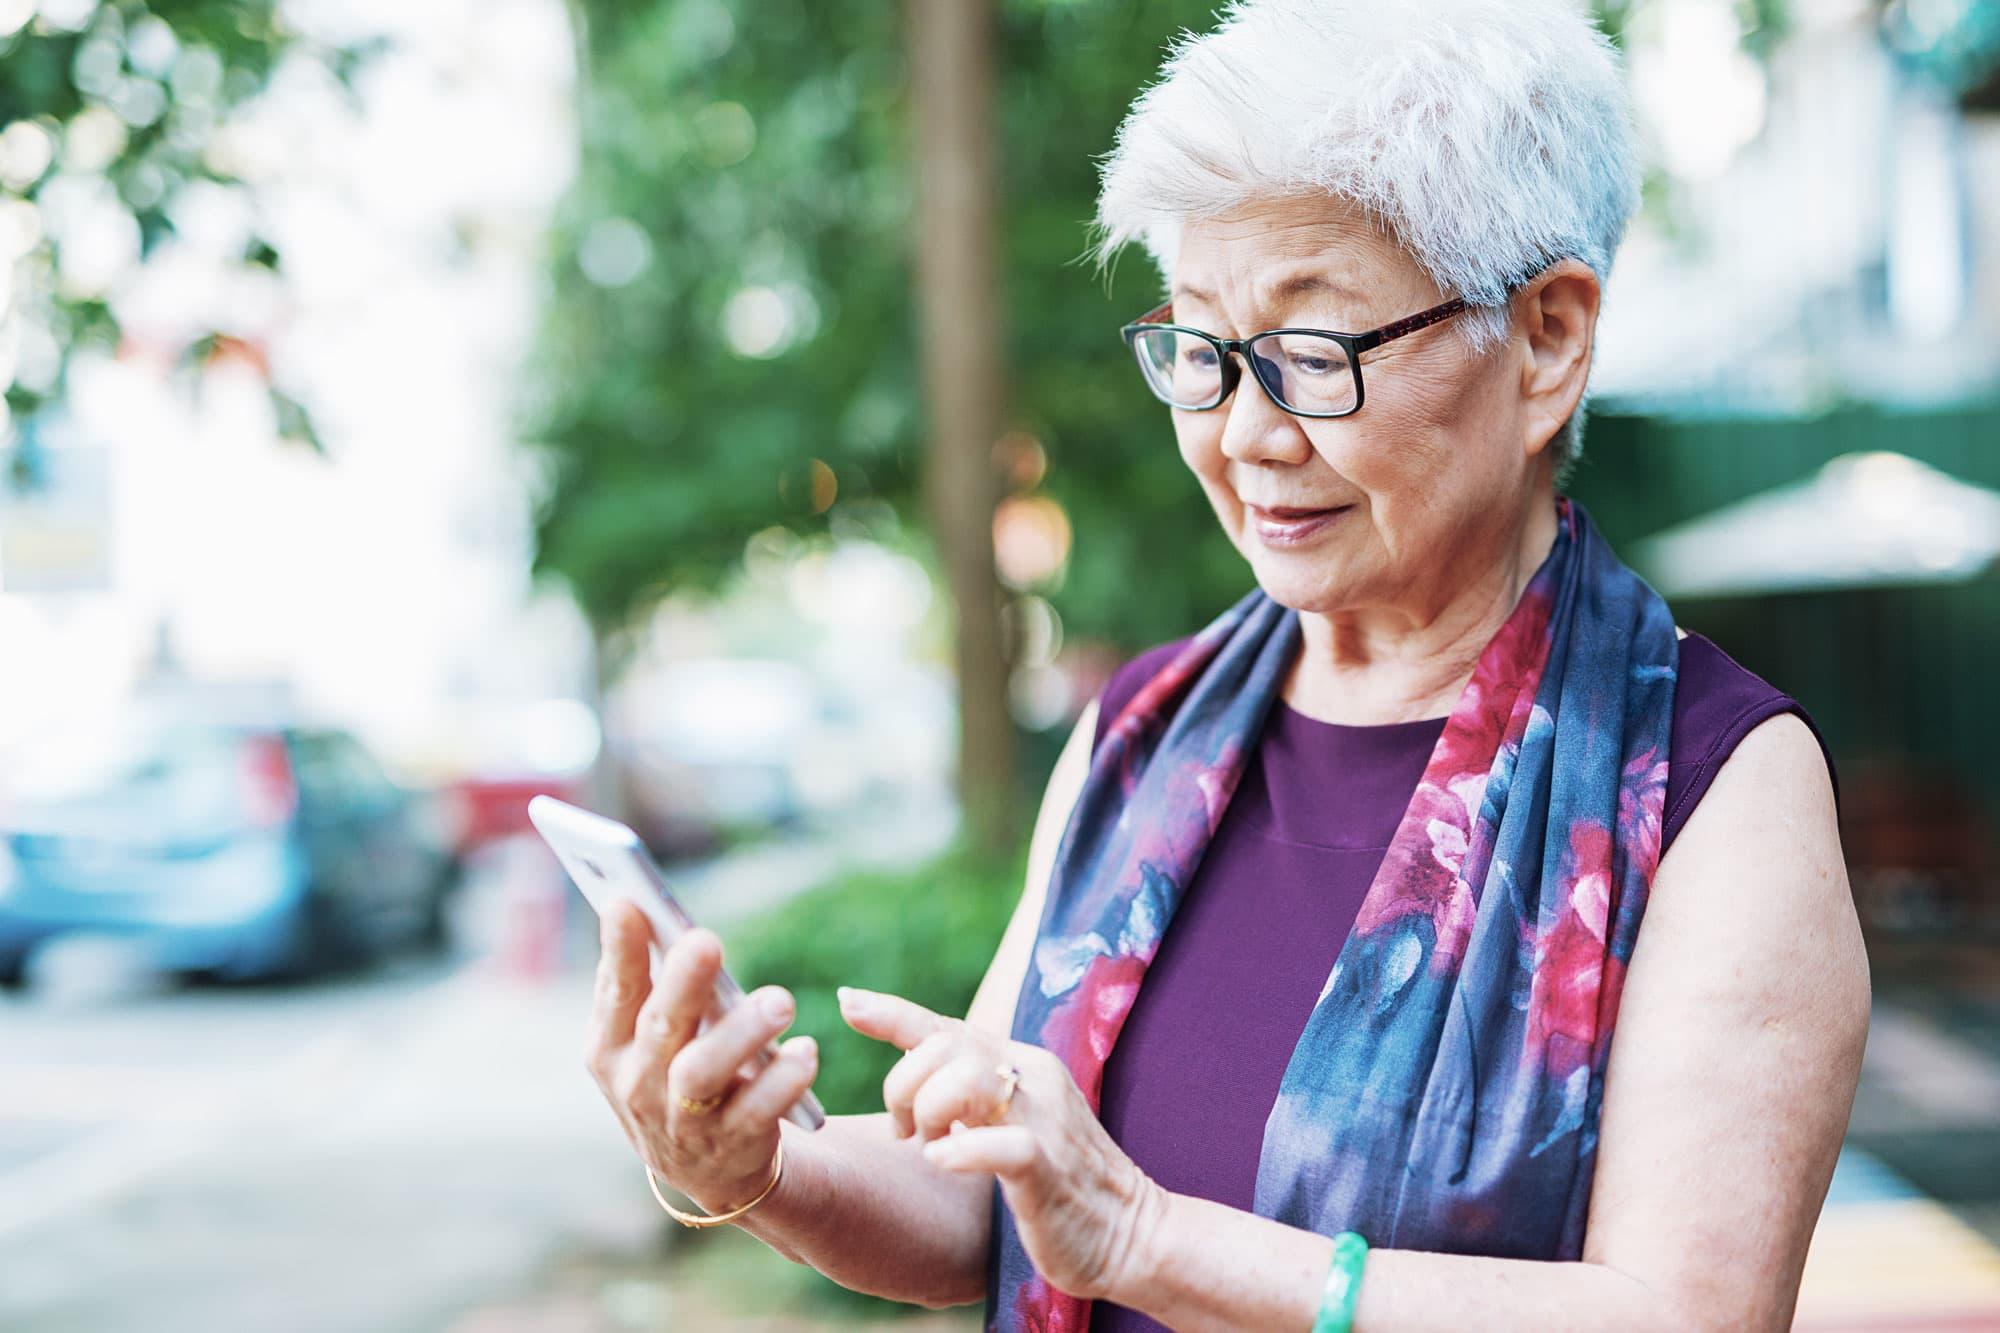 Social Security scams have caused millions of dollars in losses in 2019 alone. How you can avoid becoming a victim